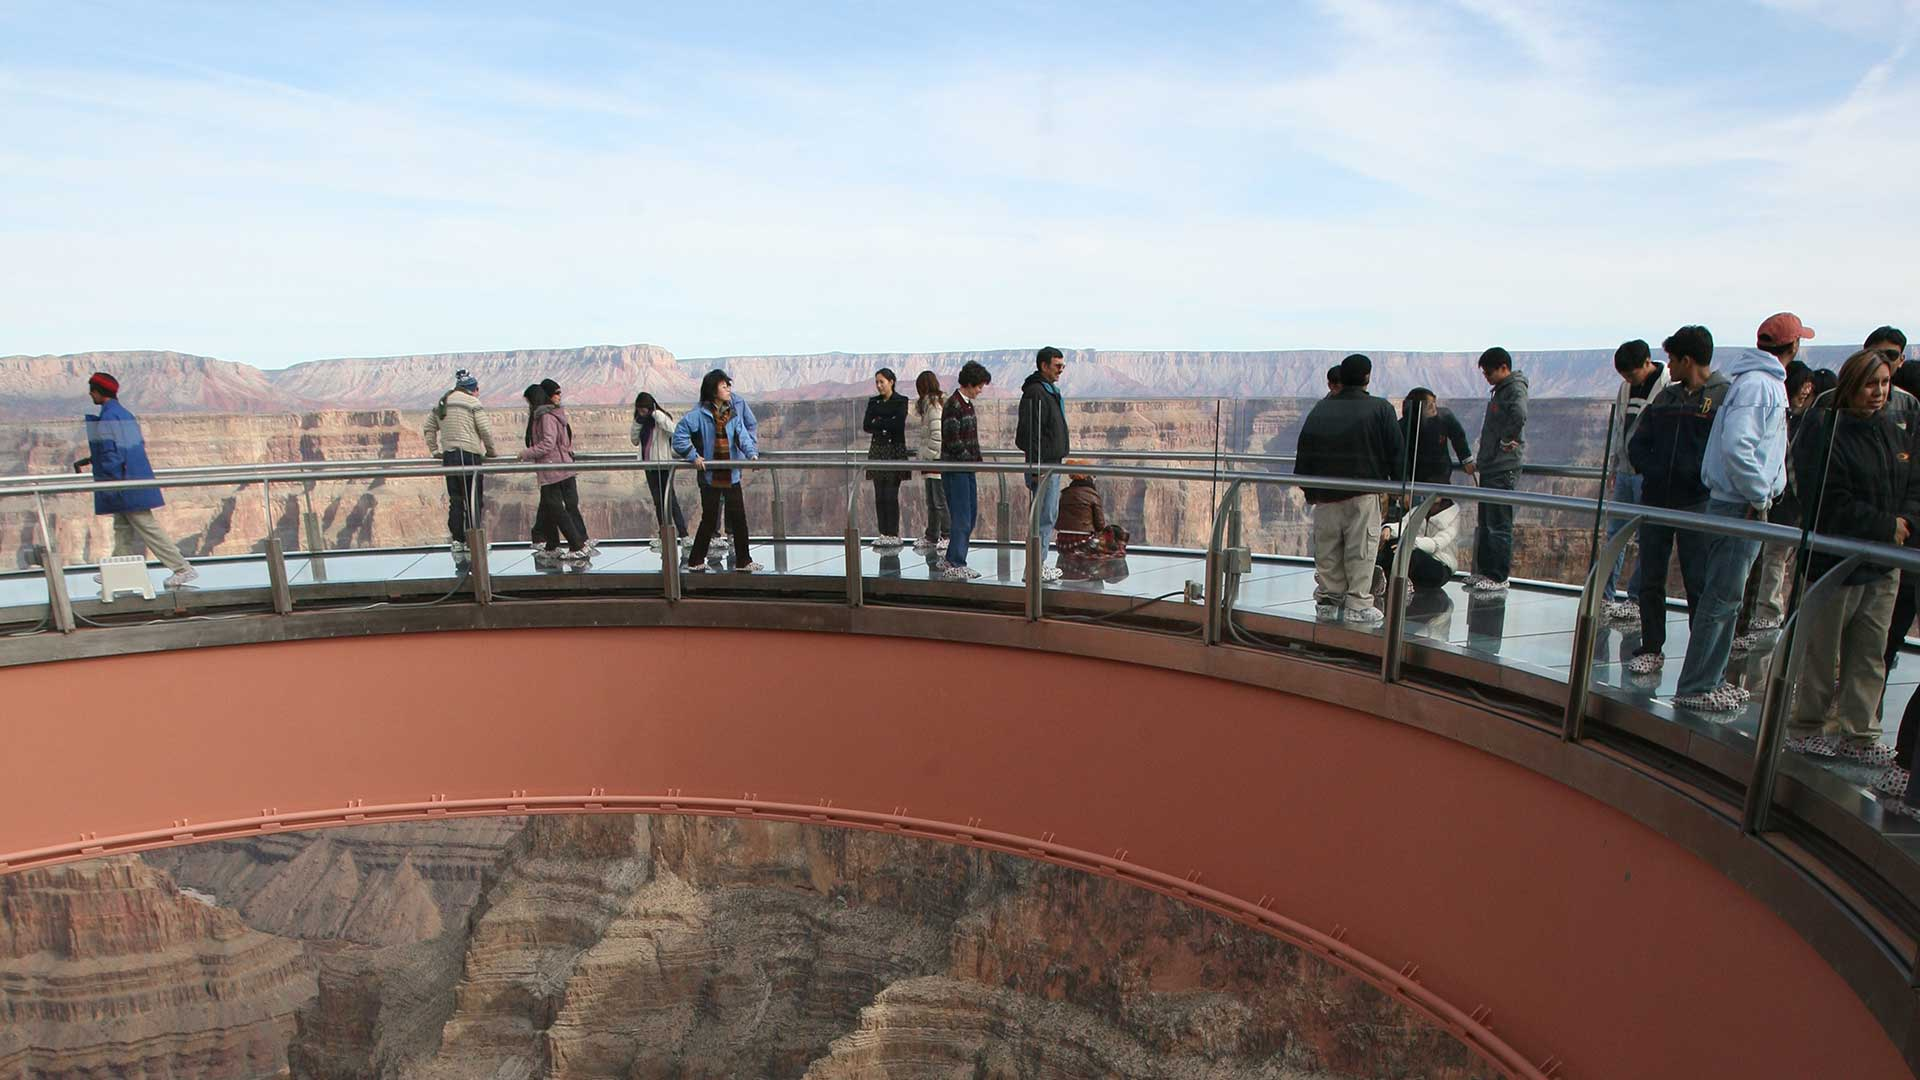 Visitors to the Grand Canyon West stand atop the Skywalk Bridge with canyon scenery behind them.